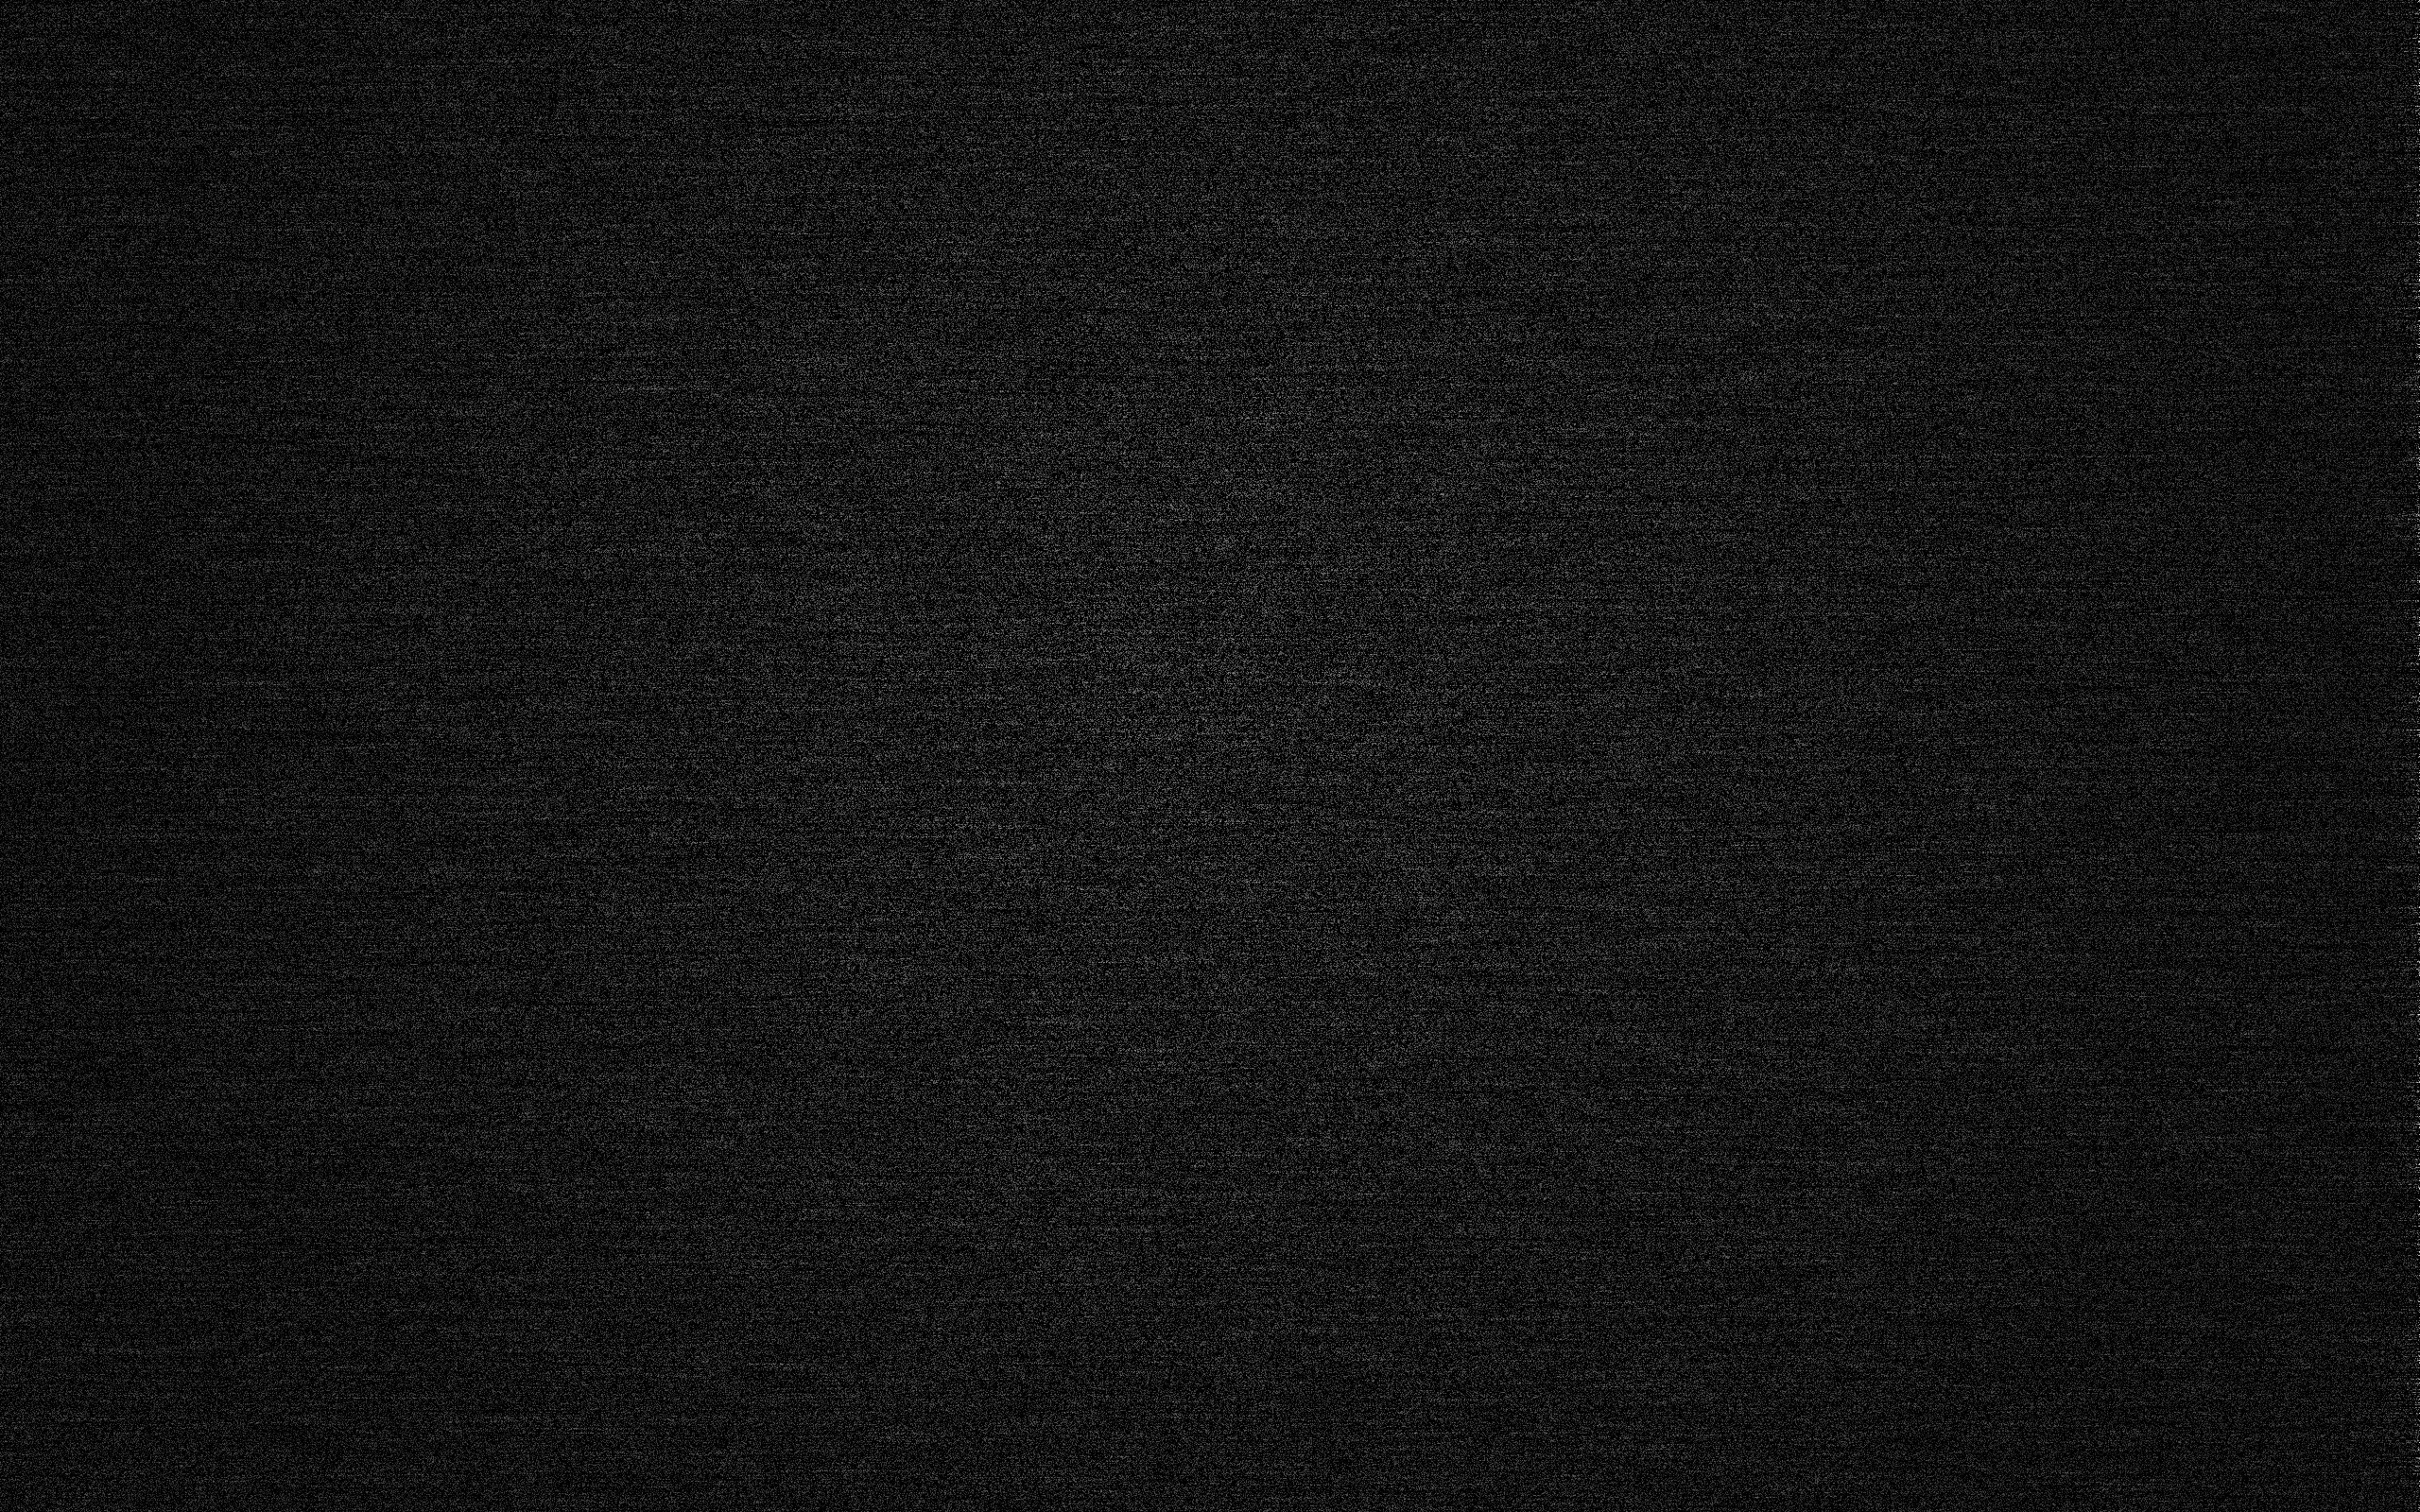 Download Texture Black Fabric Denim Textures Wallpaper 2560x1600 2560x1600